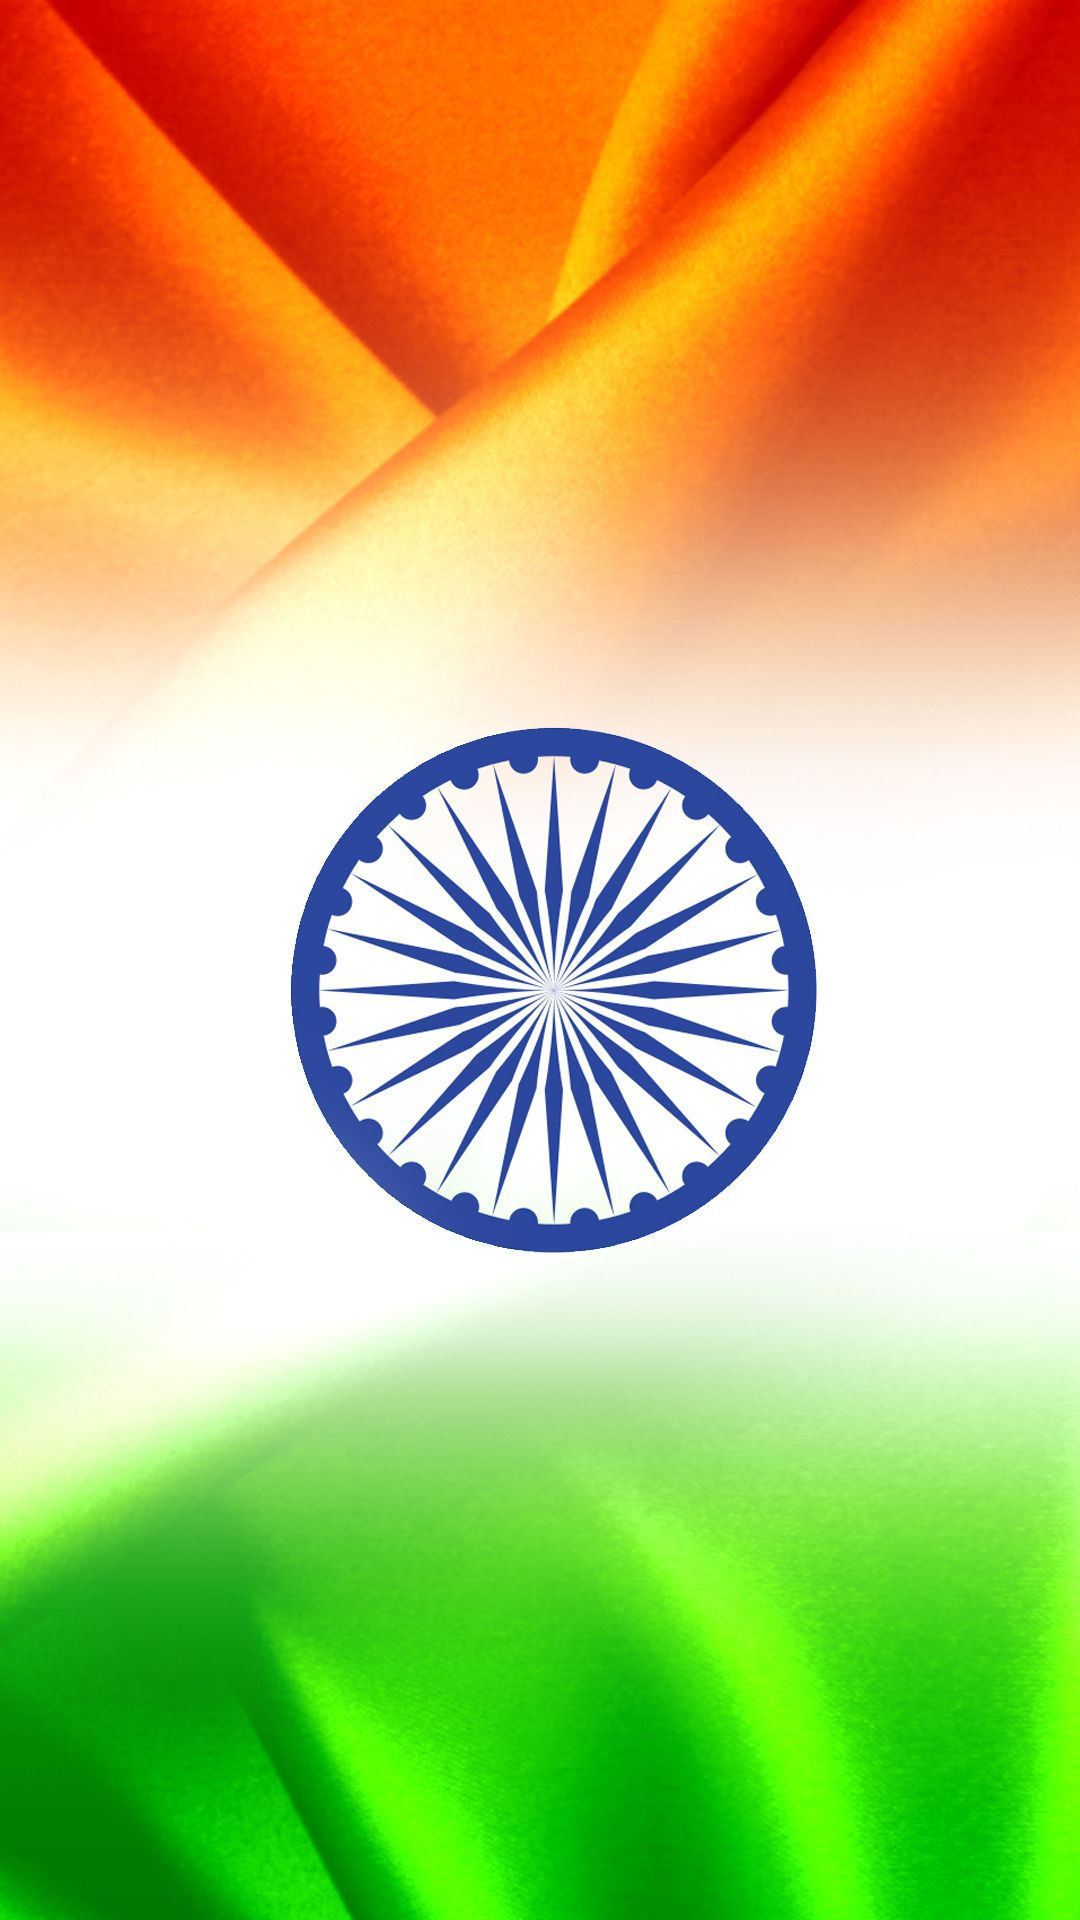 India Flag For Mobile Phone Wallpaper 11 Of 17 Tricolour India Flag Hd Wallpapers Wallpapers Download High Resolution Wallpapers Indian Flag Wallpaper Indian Flag Indian Flag Images